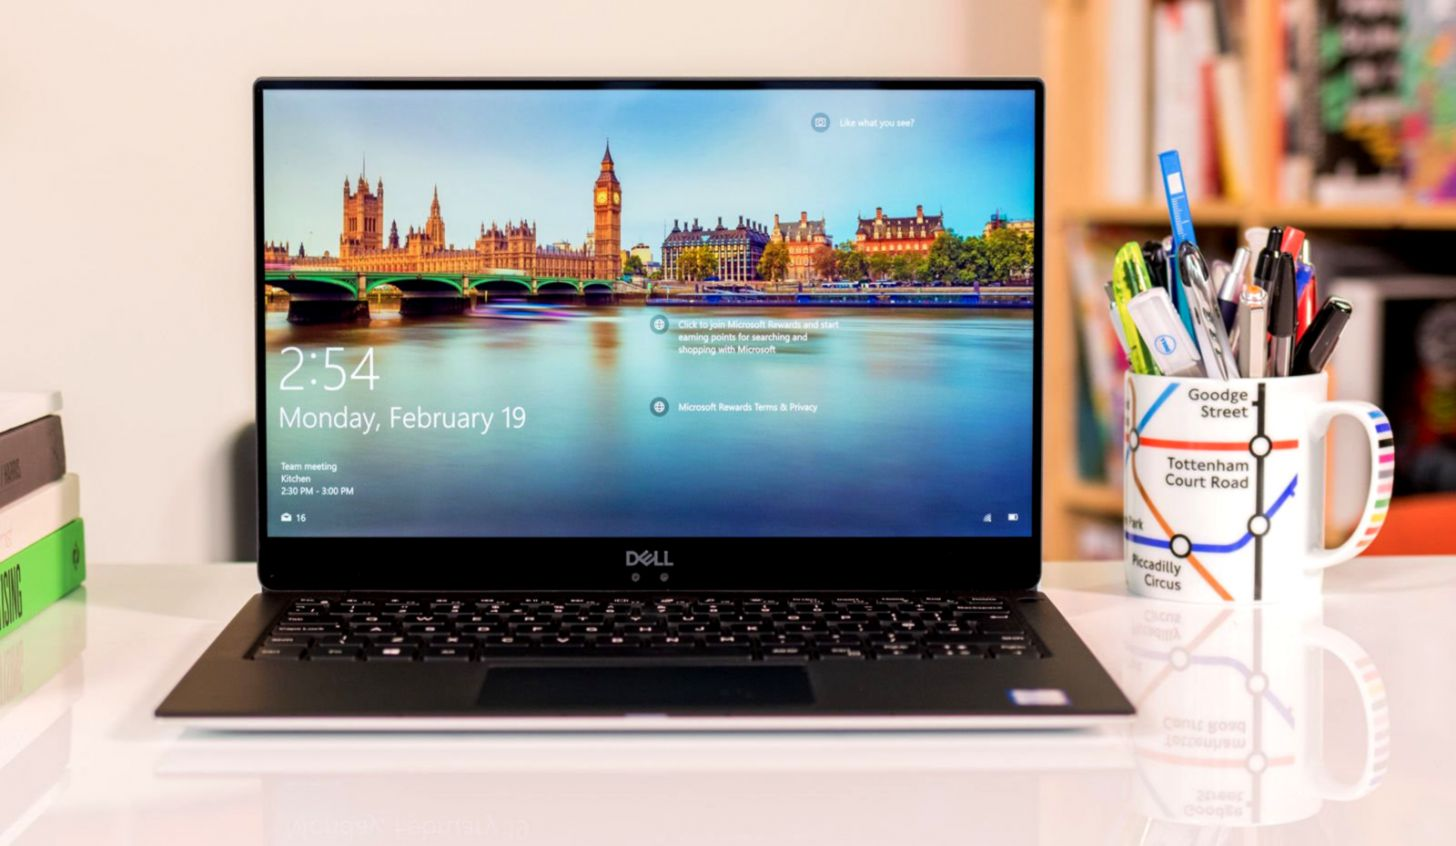 Dell Xps 12 Wallpapers Wallpapers Style